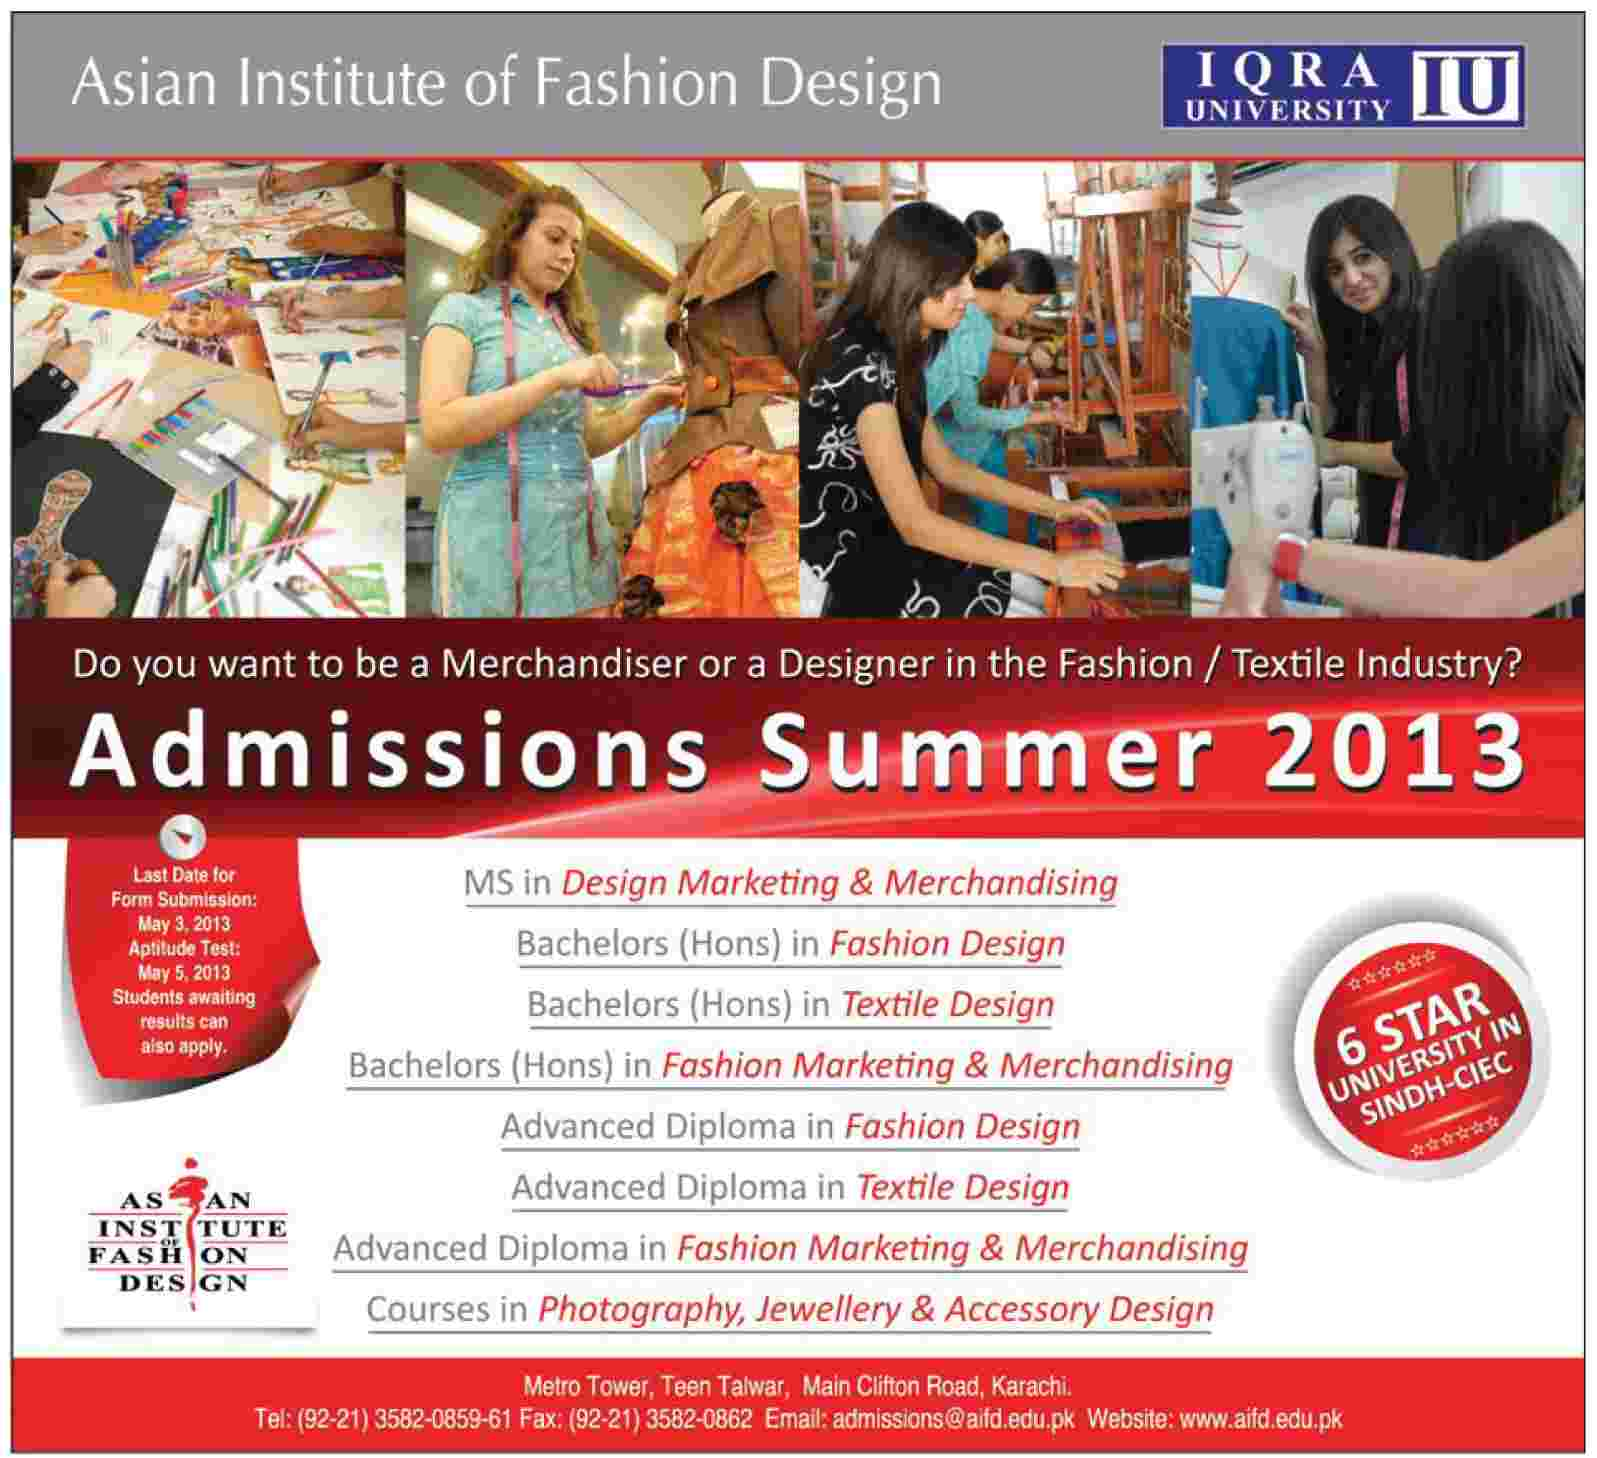 Iqra University Asian Instiitute of Fashion Designing Summer Admissions 2013